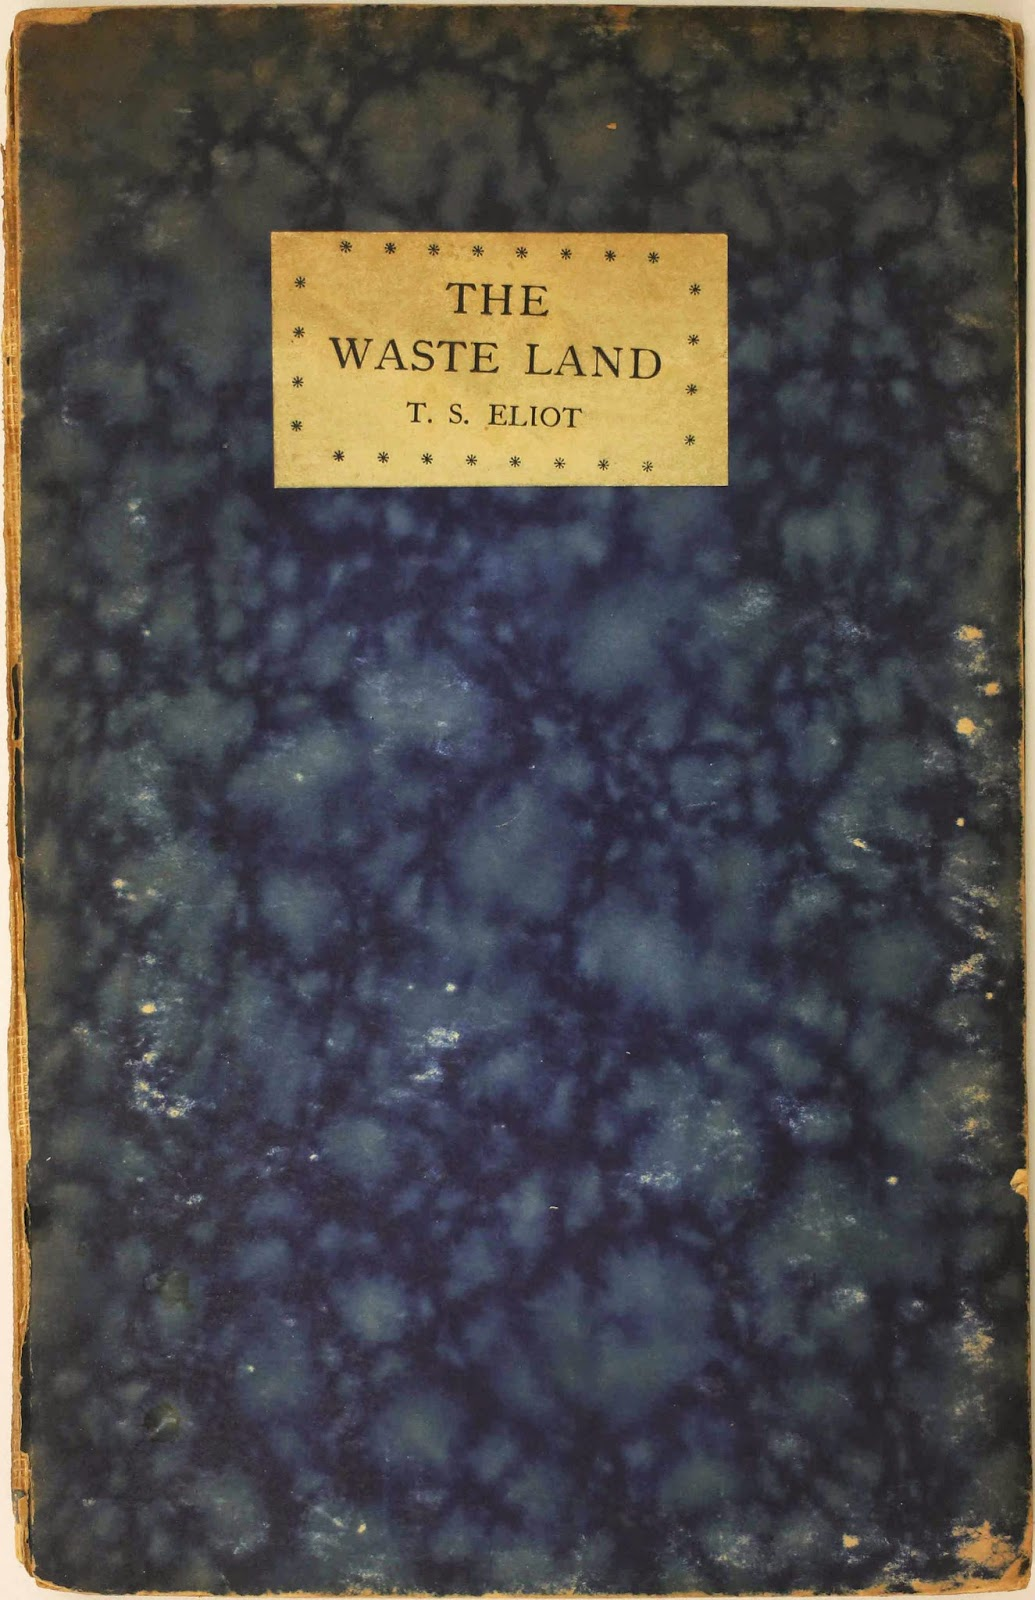 themes of ceremonies in t s eliots poem the waste land Two months later, eliot checked out of the sanatorium and gave ezra pound a manuscript entitled the waste land this work alone is considered his most famous poem it is a poetic exploration of soul's struggling for redemption, (kimball 23.